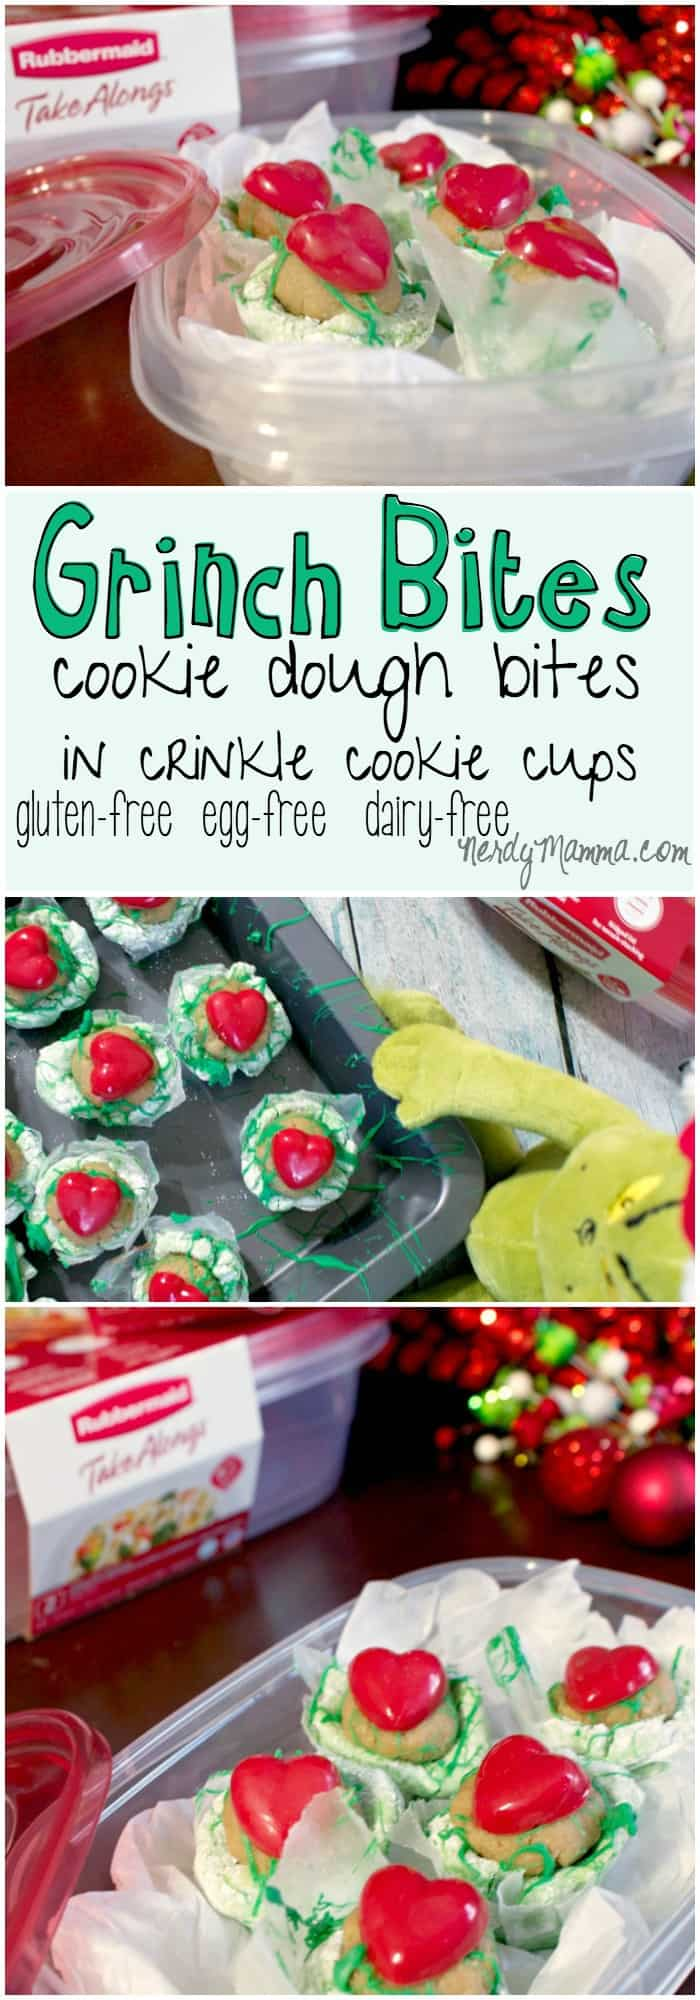 These yummy Grinch Bites are so easy to make--and so yummy! Gluten-free, Egg-free, Dairy-free...they hit all the high points! LOVE!